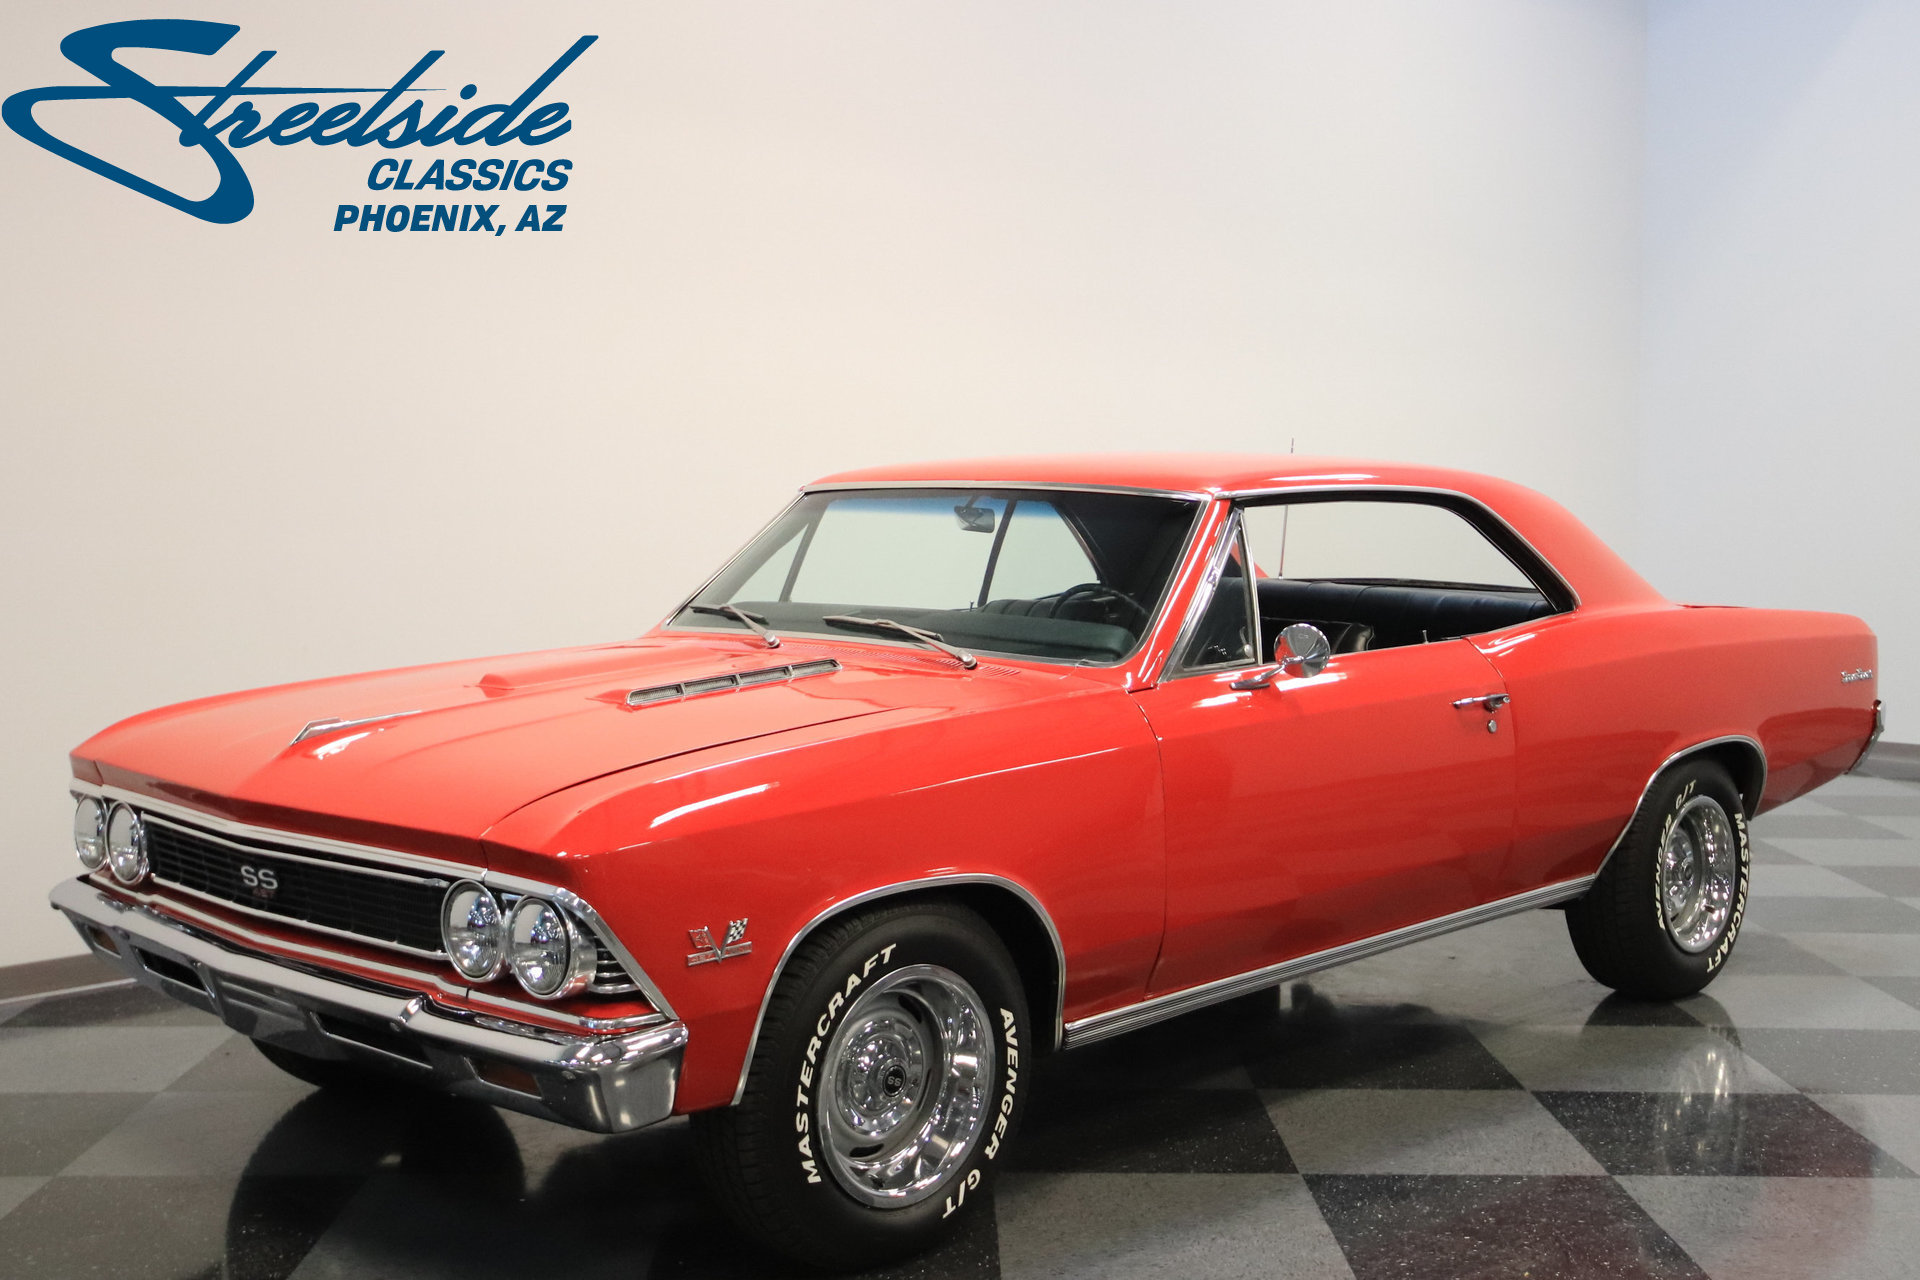 1966 Chevrolet Chevelle Streetside Classics The Nations Trusted Malibu Ss Show More Photos